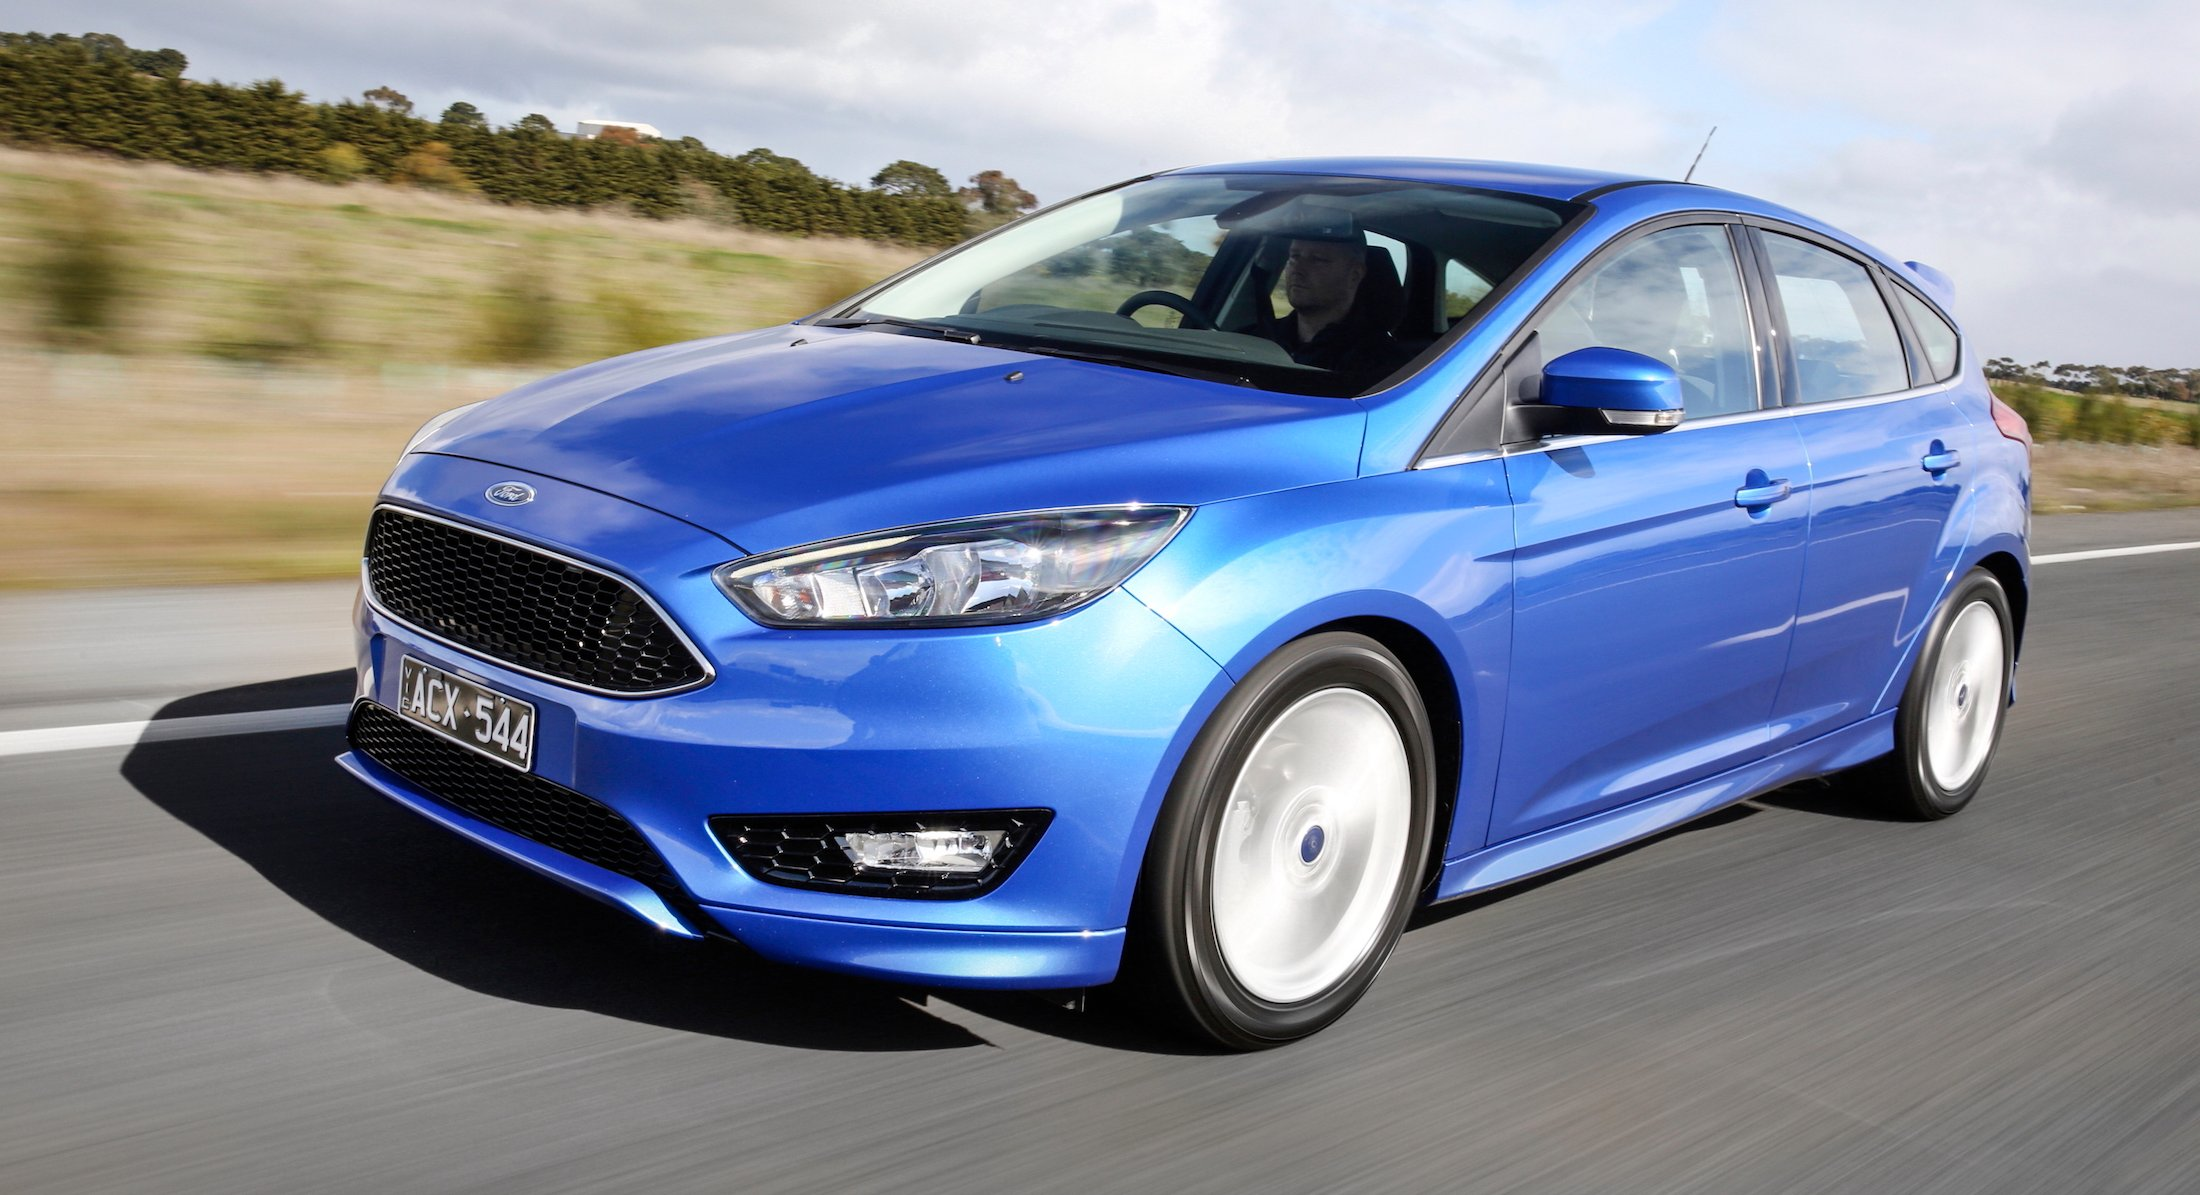 2016 Ford Focus Review Caradvice